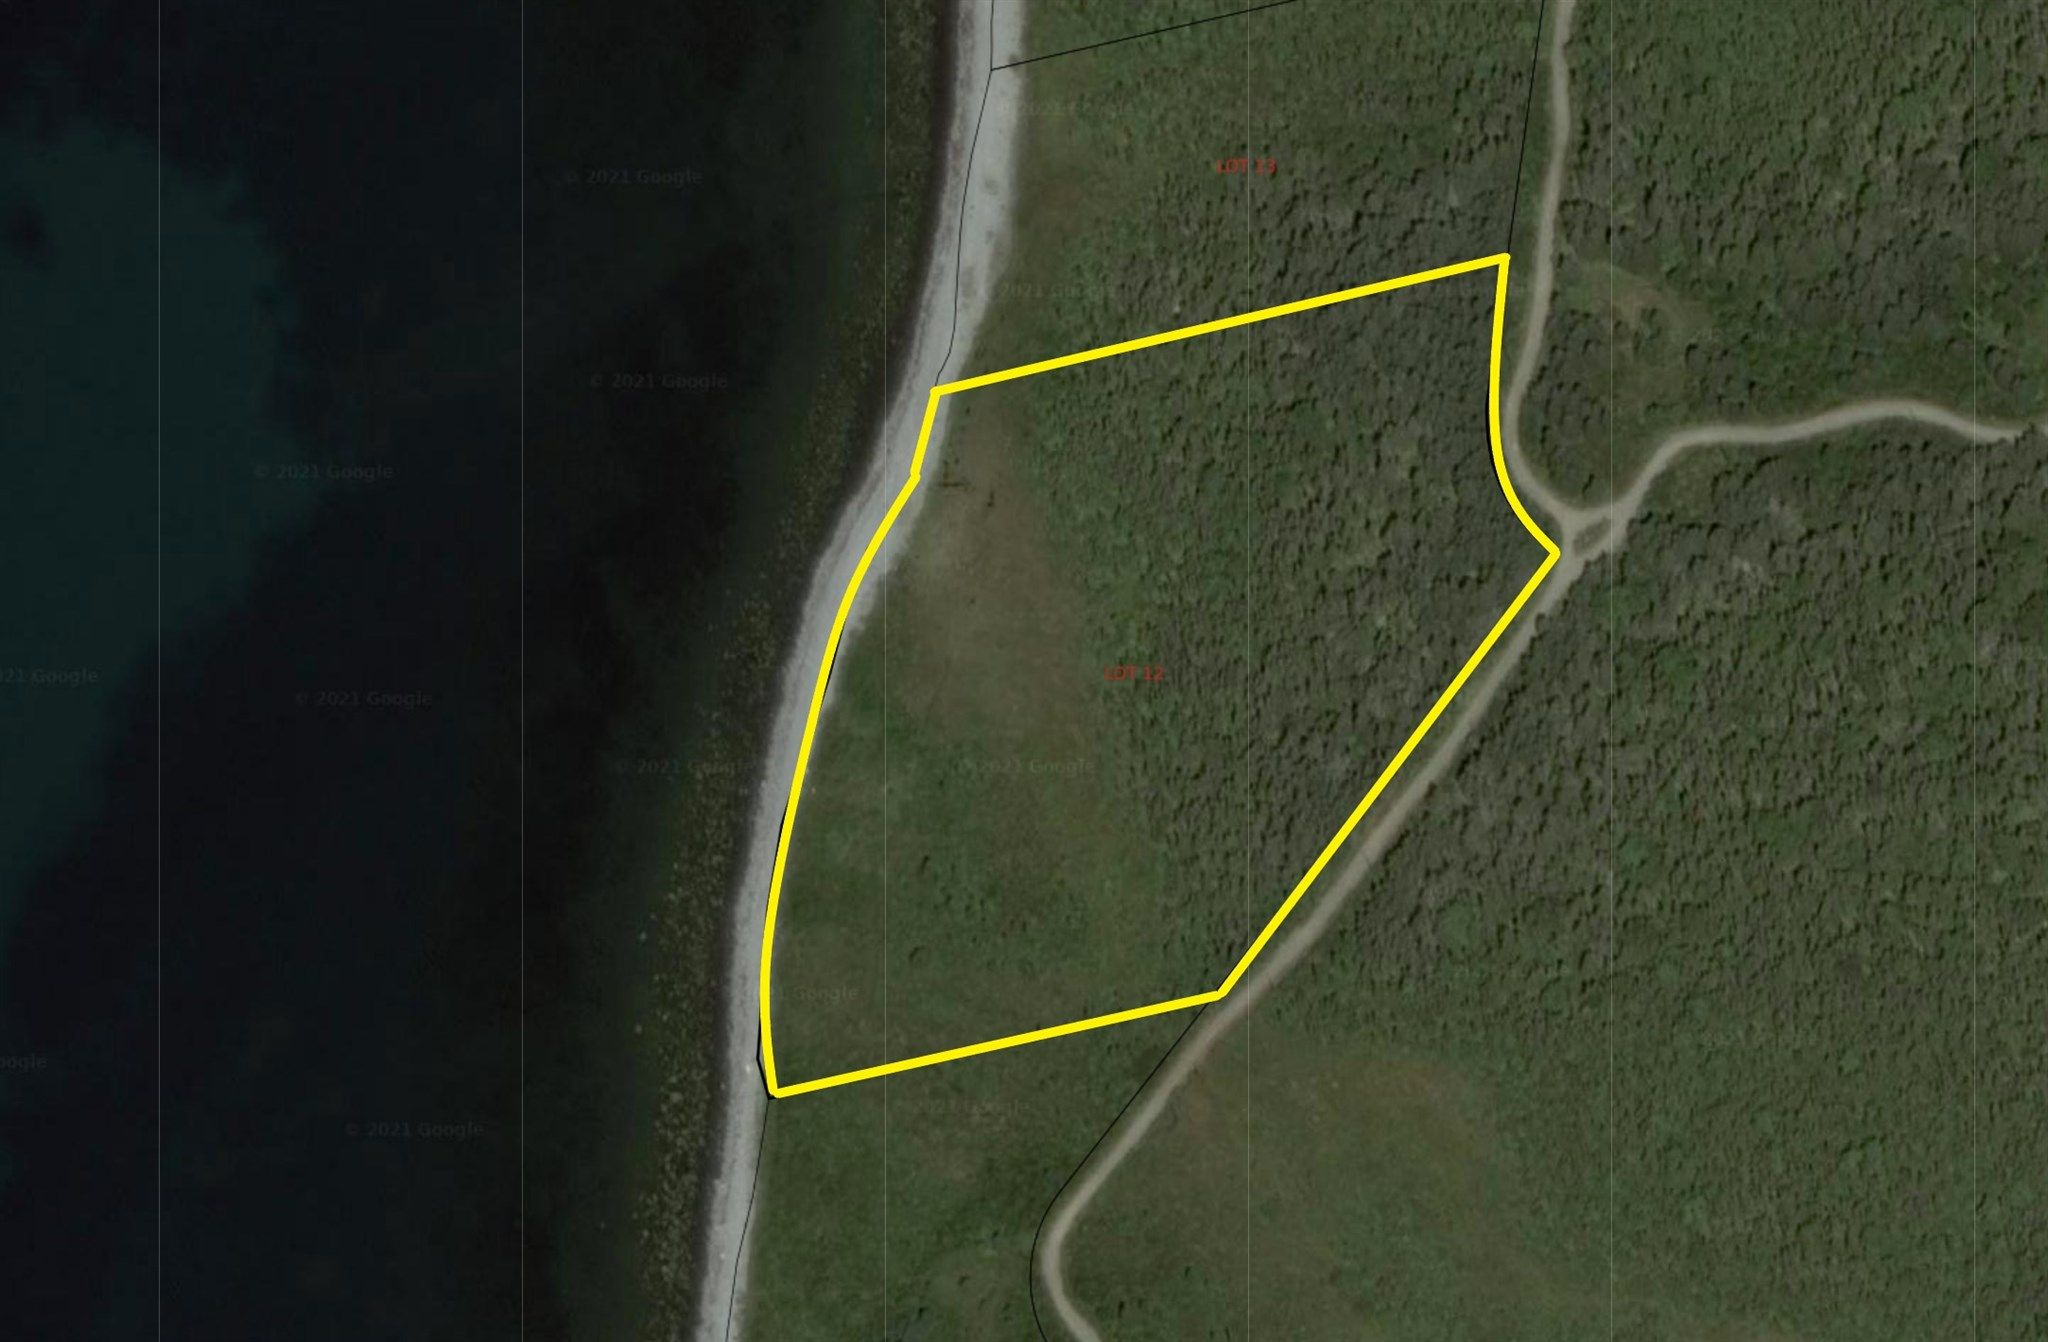 Main Photo: Lot 12 Youngs Road in East Green Harbour: 407-Shelburne County Vacant Land for sale (South Shore)  : MLS®# 202105631